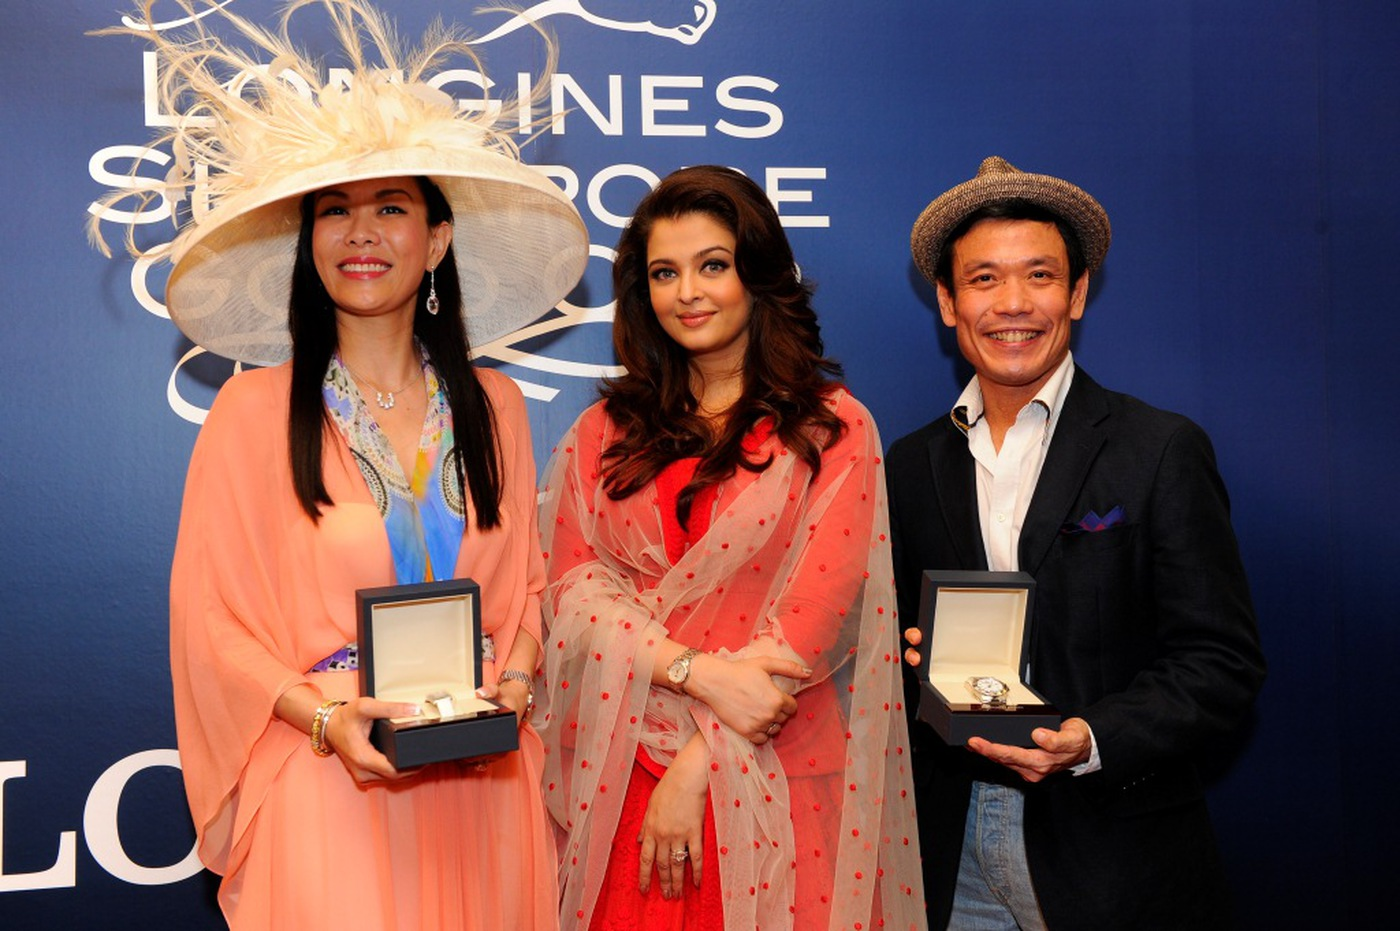 Longines Flat Racing Event: Longines Singapore Gold Cup 2012 raises S$236,728 8